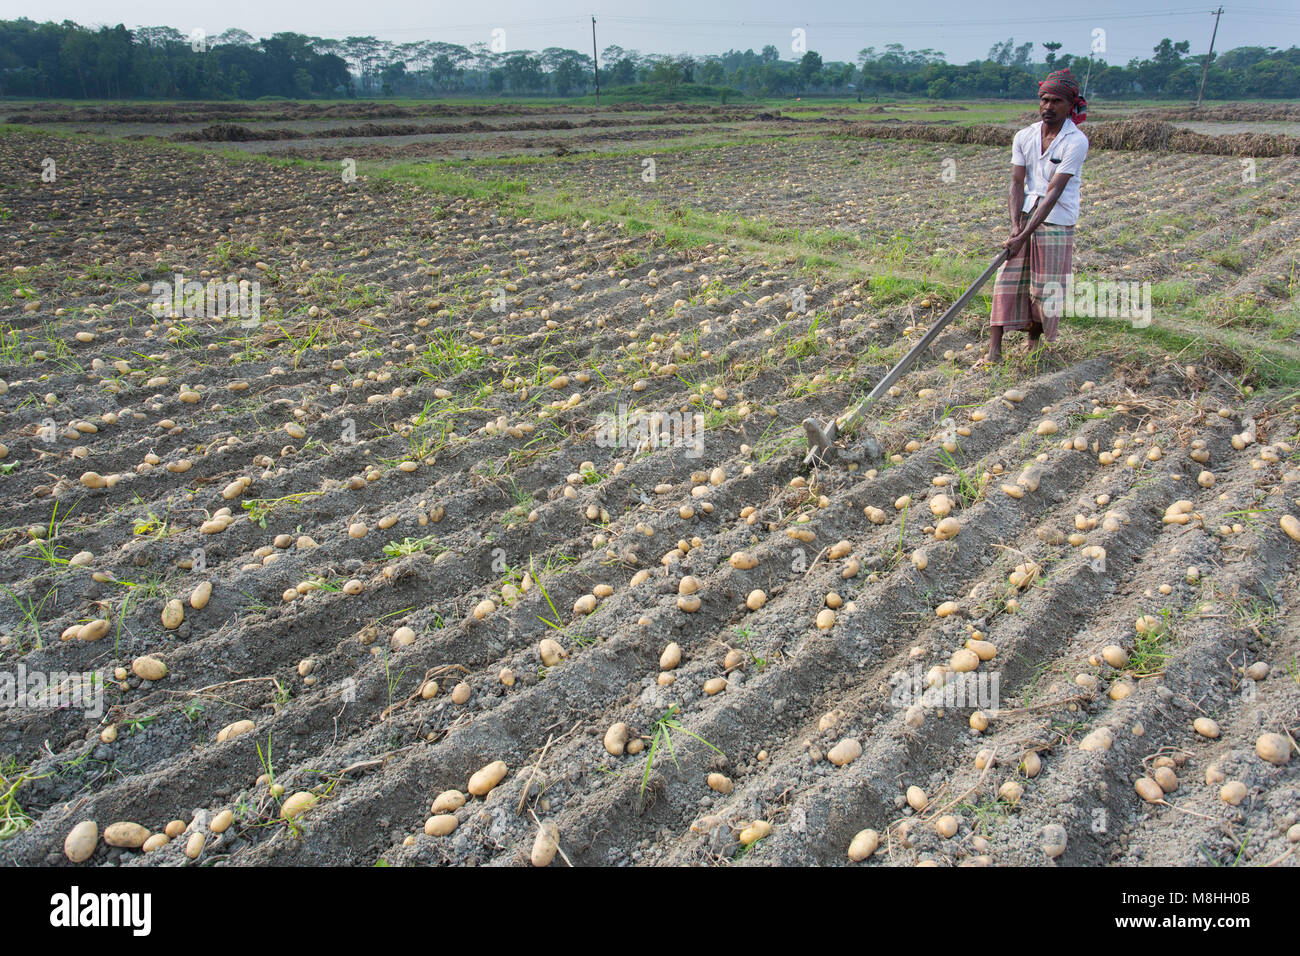 Farmers are busy to Harvest potato in a potato field, in Munshigonj, Bangladesh. - Stock Image